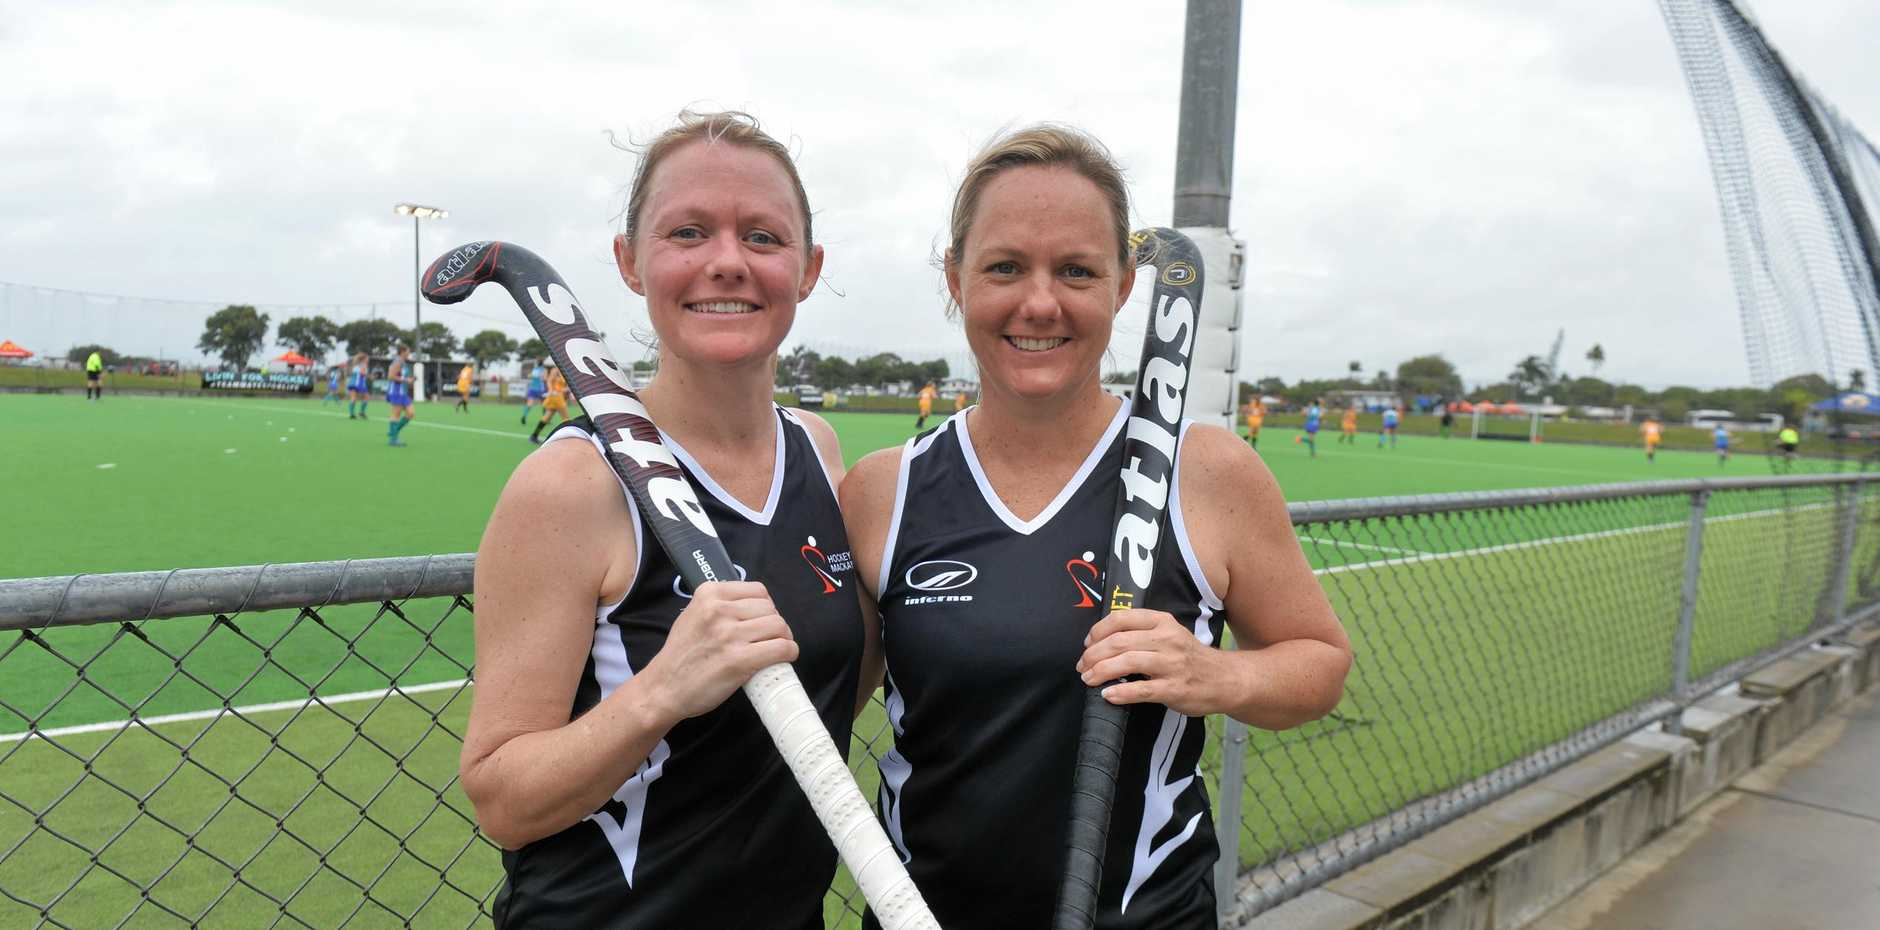 Sisters Rebecca Walpole, left, and Ellen Crawford have been playing hockey together since they were six. On Sunday they helped Mackay win the runners-up trophy at the Queensland Women's Masters Tournament.